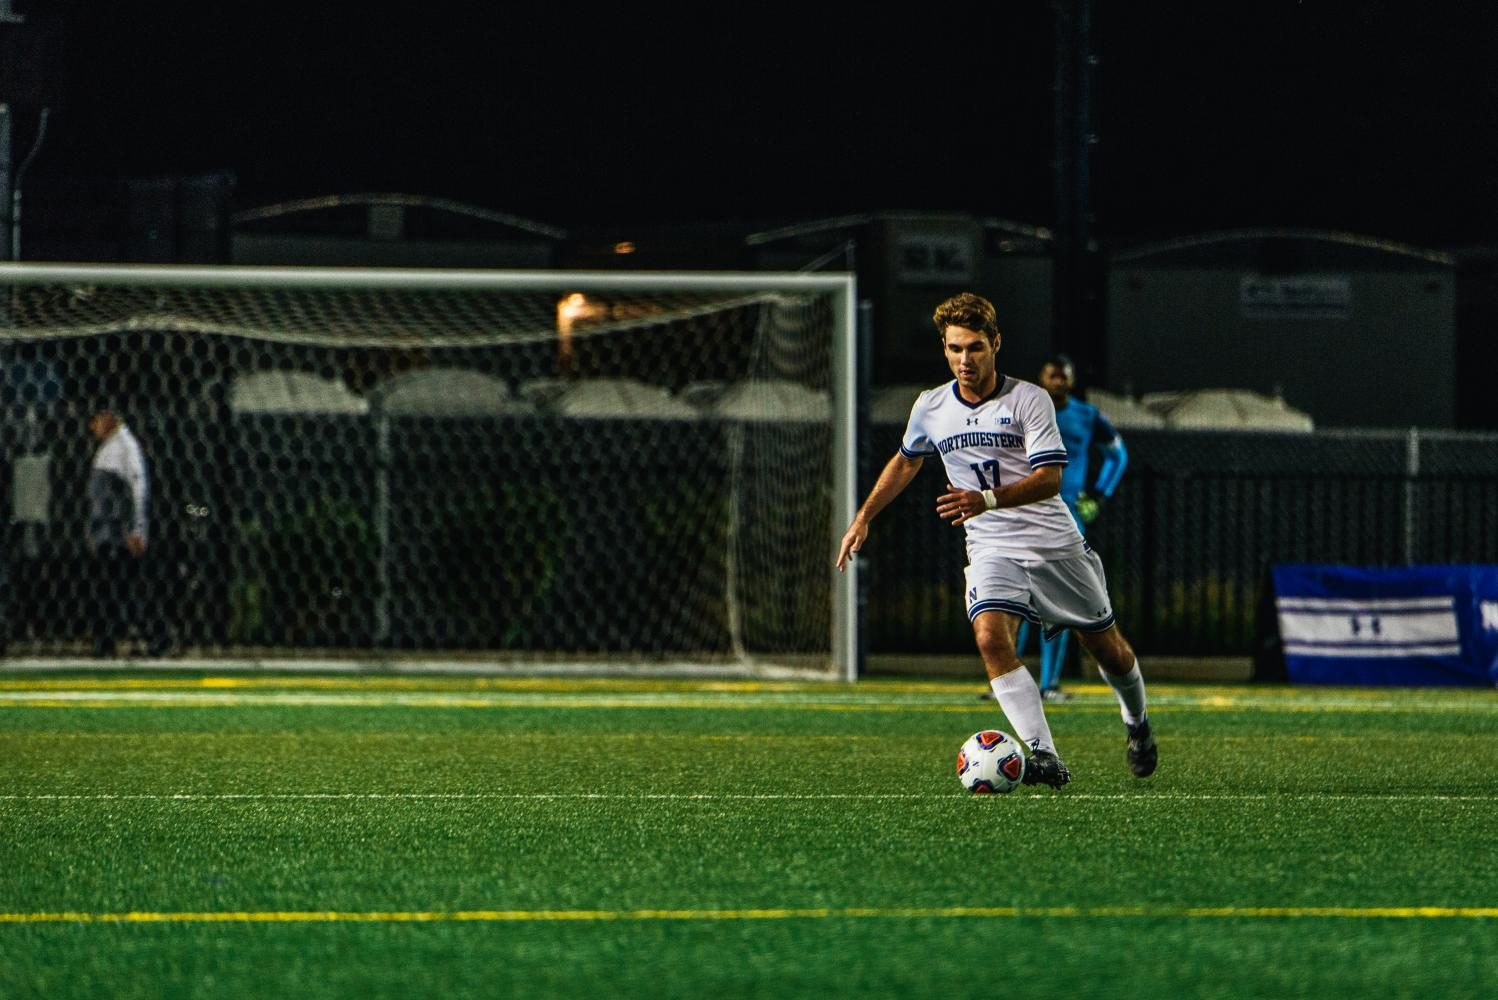 Mattias+Tomasino+dribbles+the+ball.+The+sophomore+midfielder%27s+assisted+on+Mac+Mazzola%27s+game-tying+goal+Friday.